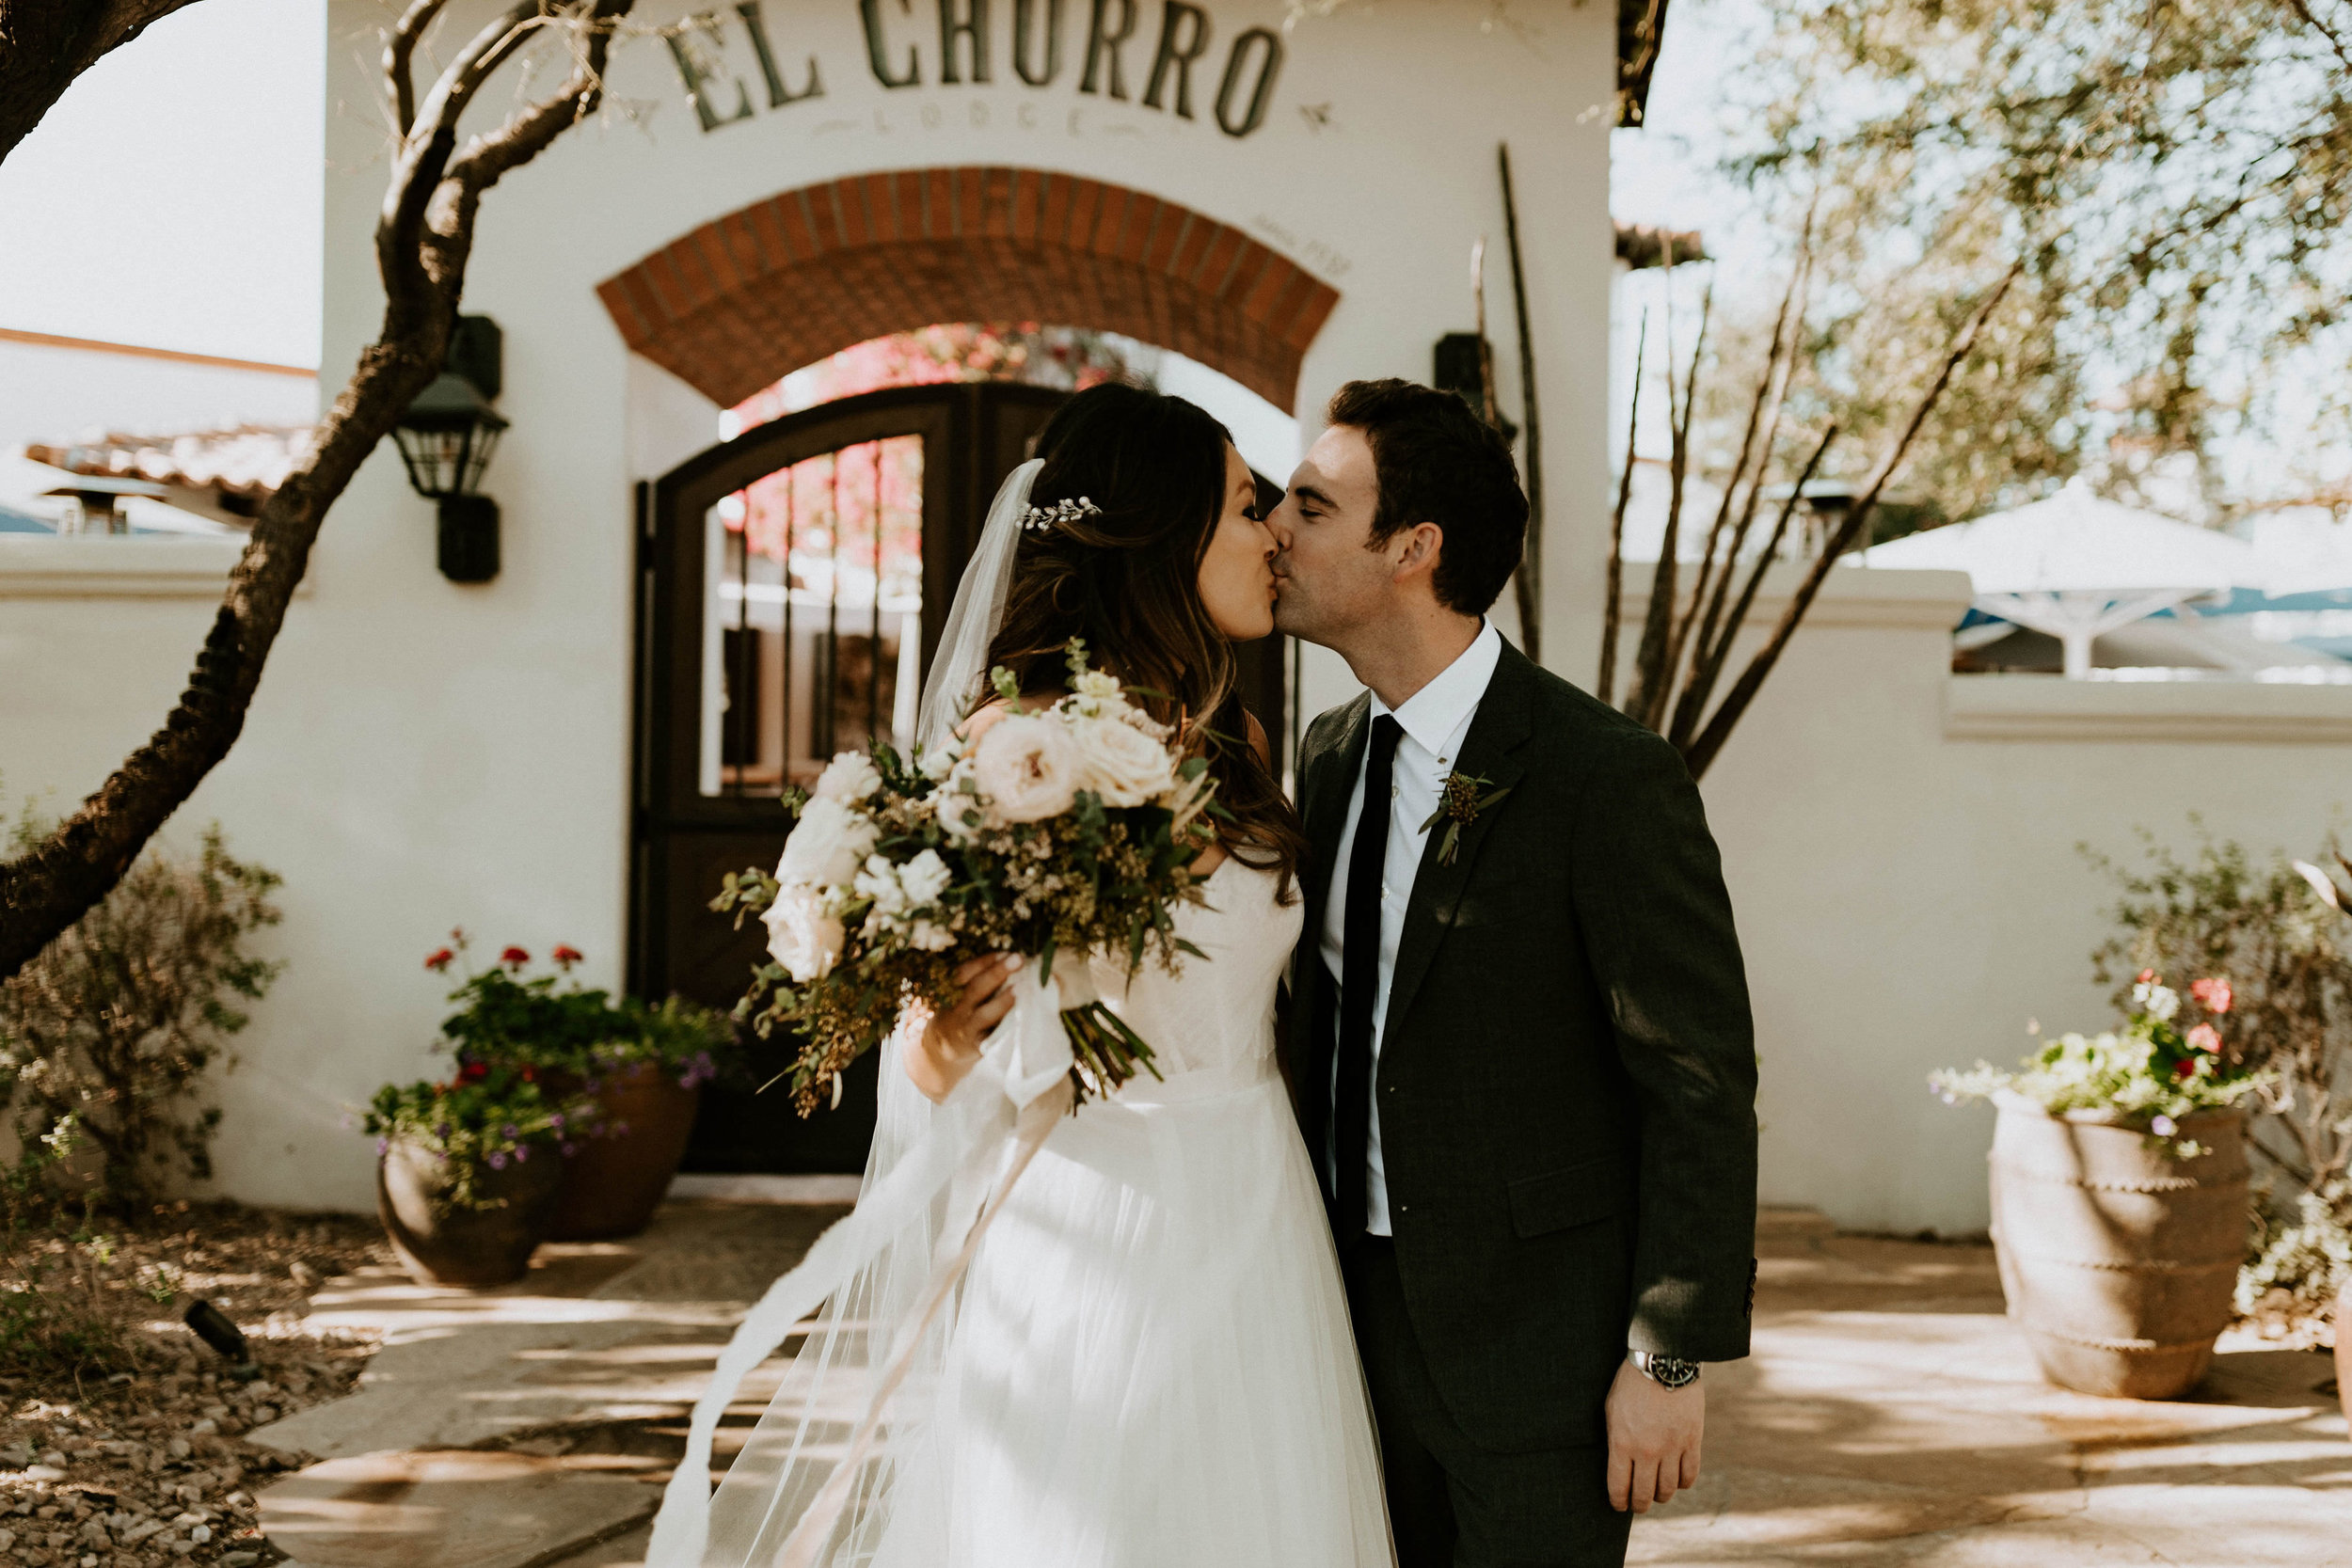 ElChorroWeddingErikaGreenePhotography33.jpg